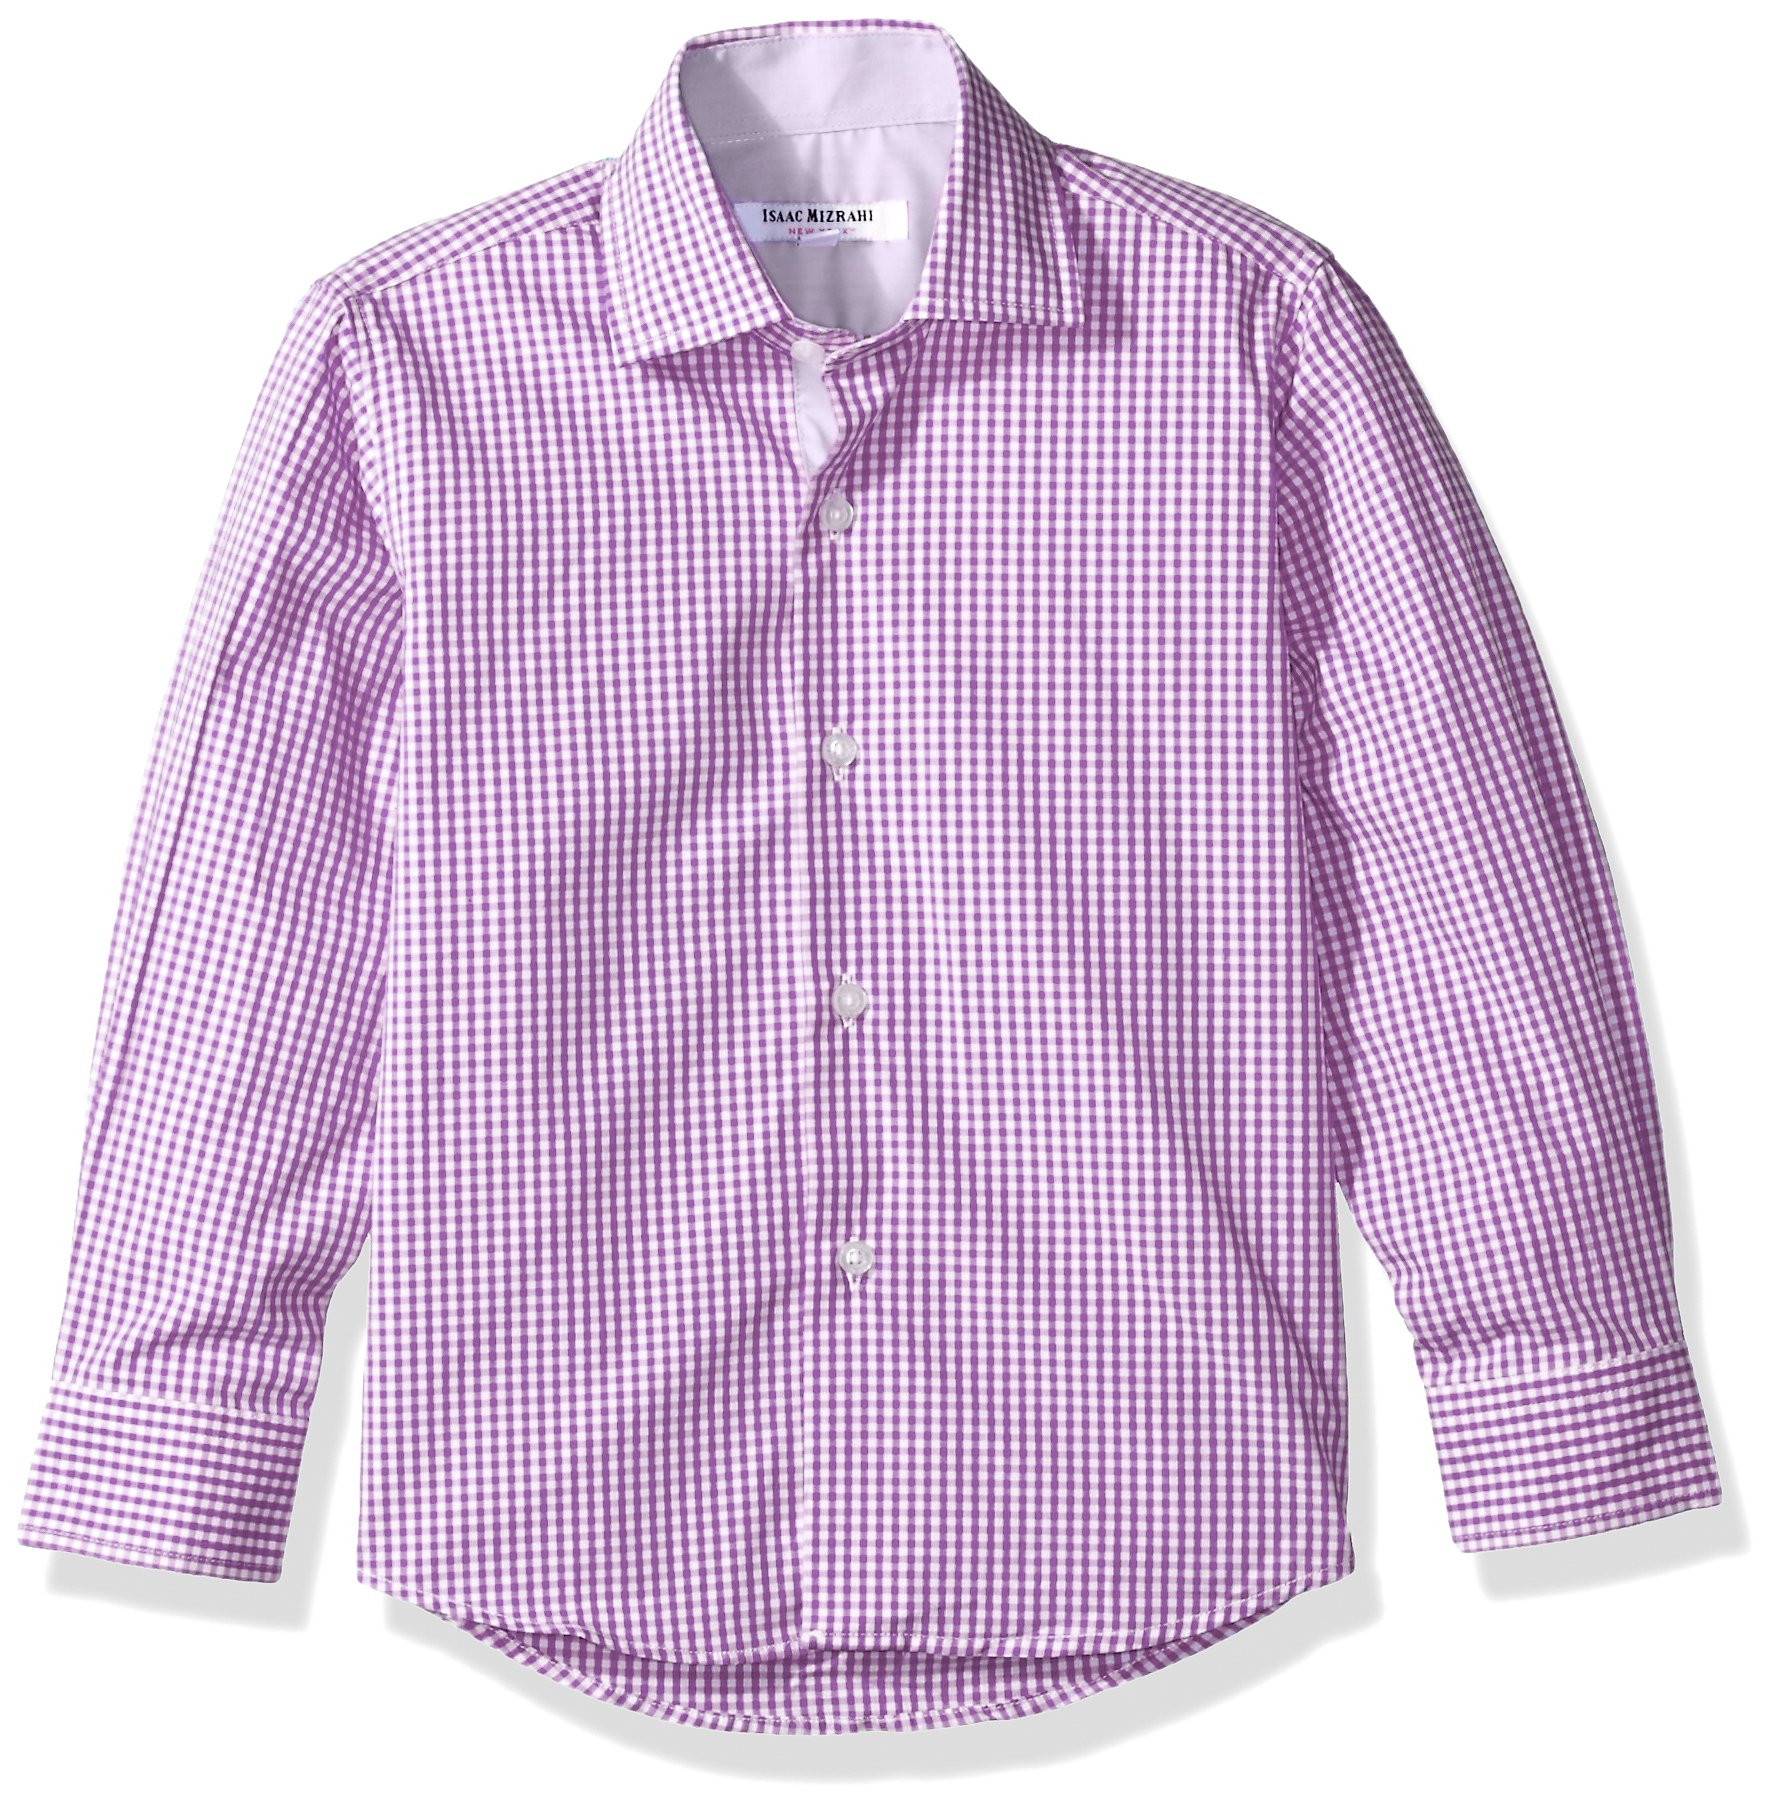 Isaac Mizrahi Big Boys' Cotton Gingham Button Down, Purple, 8